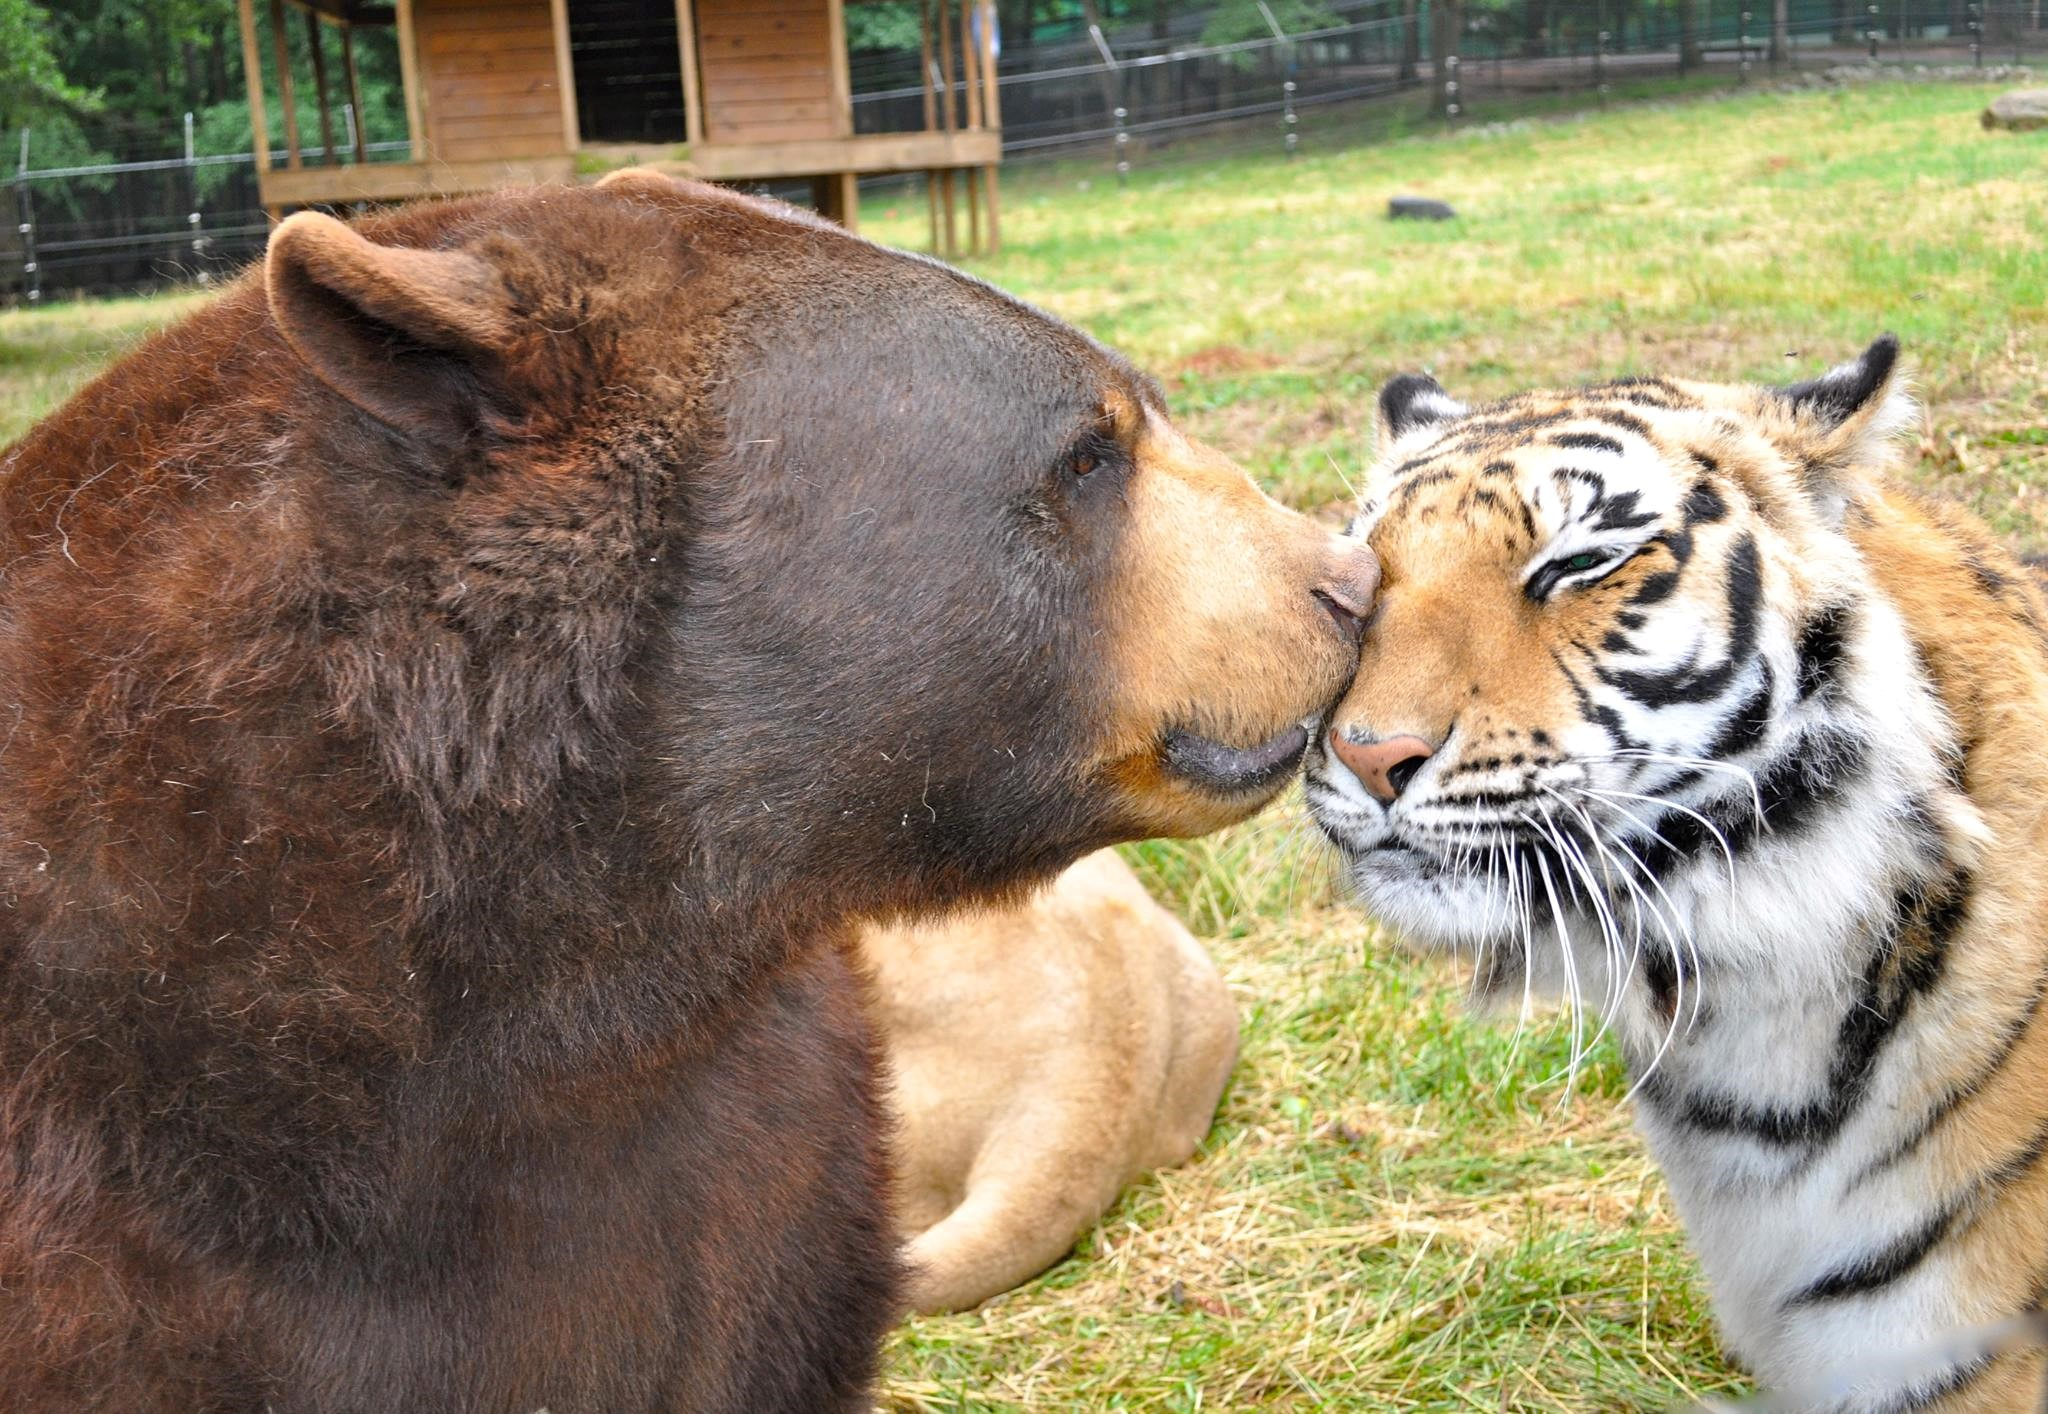 Bear and tiger at Noah's Ark Animal Sanctuary in Henry County, Georgia